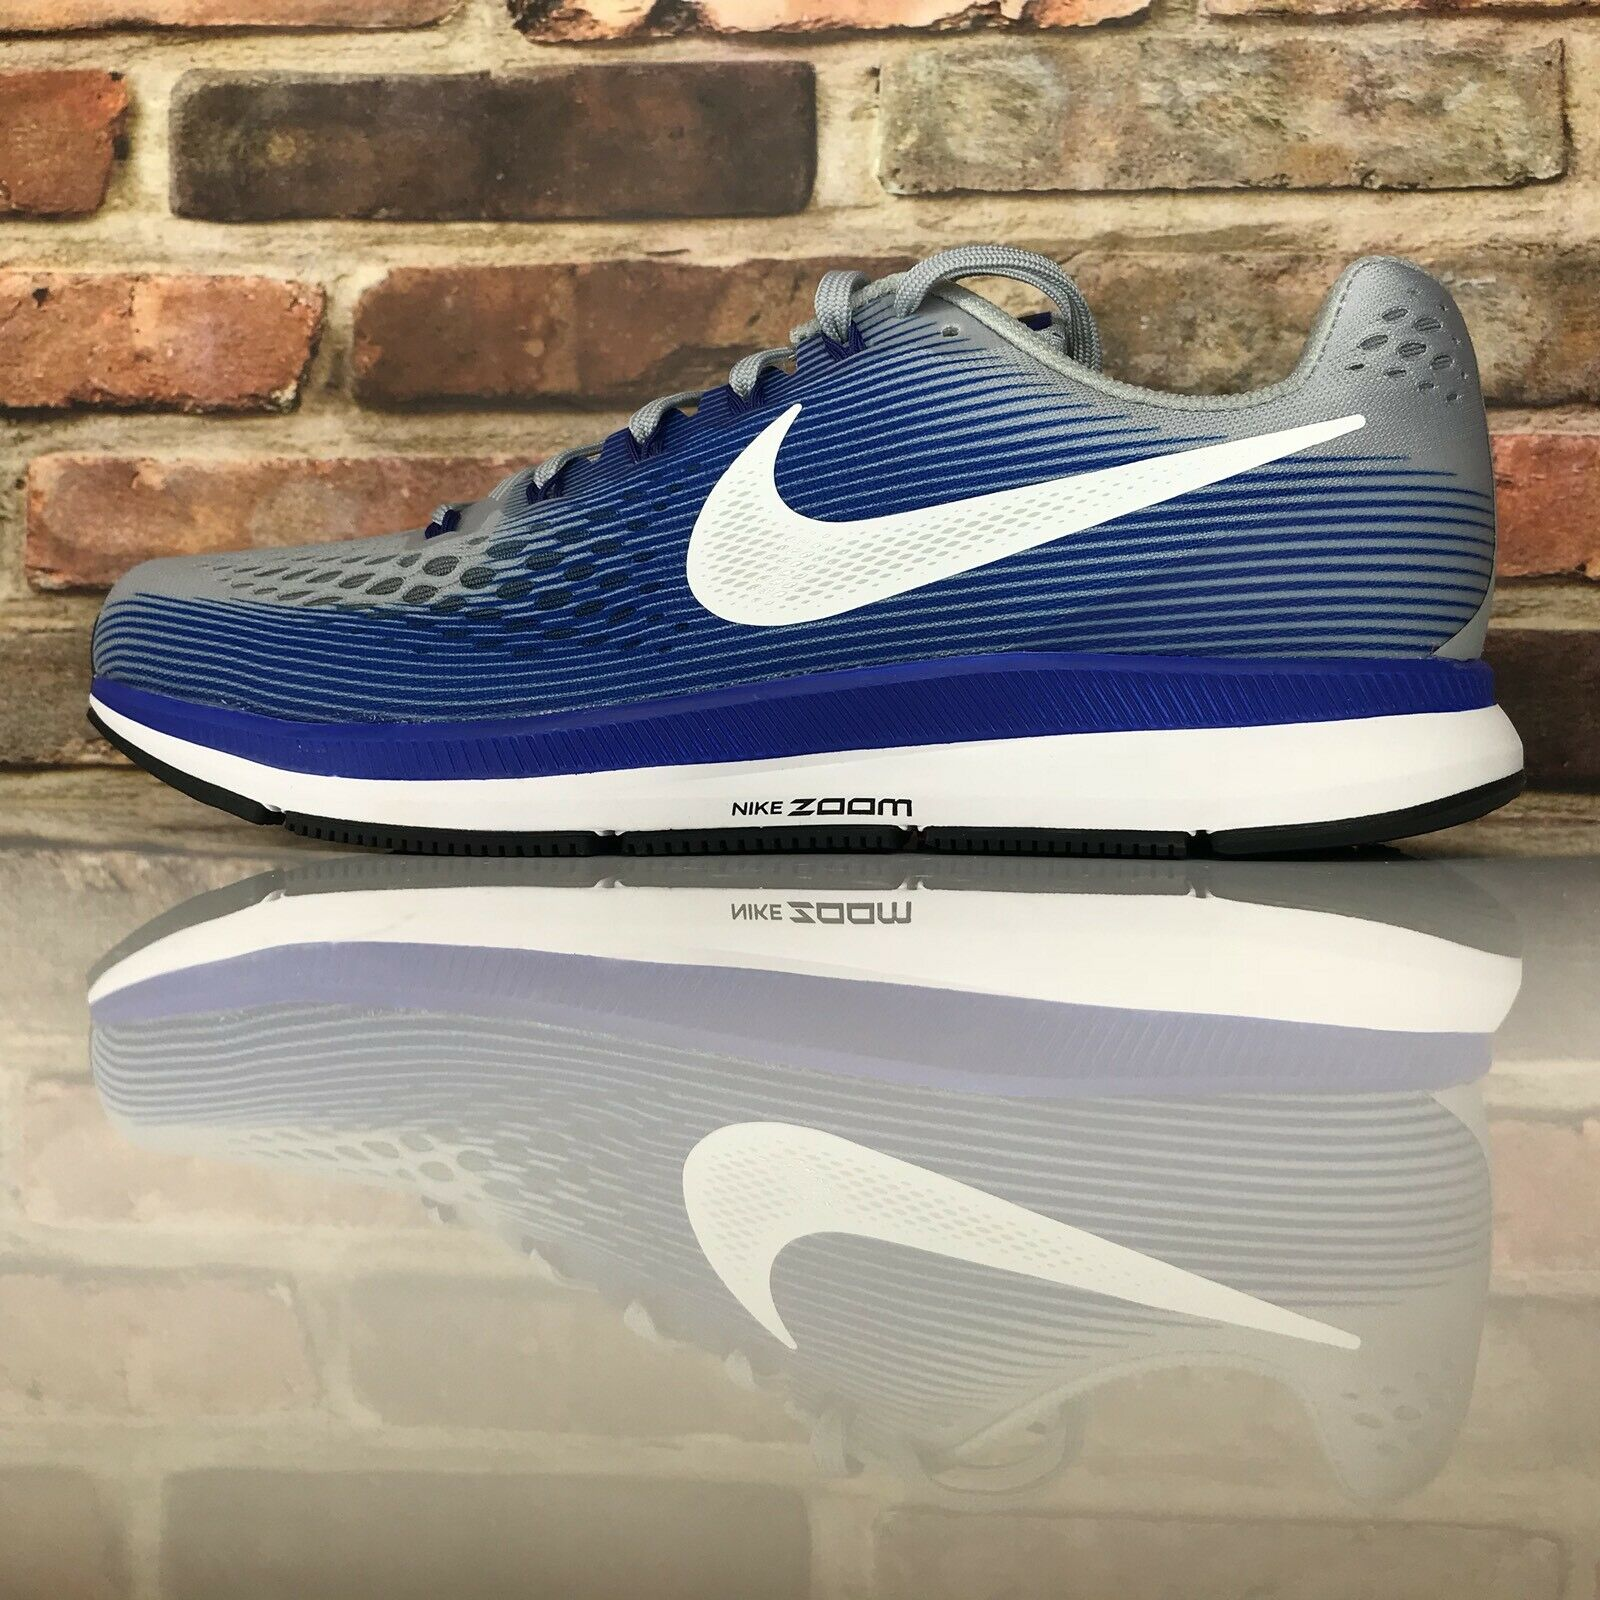 Nike AIR ZOOM PEGASUS 34 (4E) Wide Running shoes Mens Size 10.5 blueE 880557-007